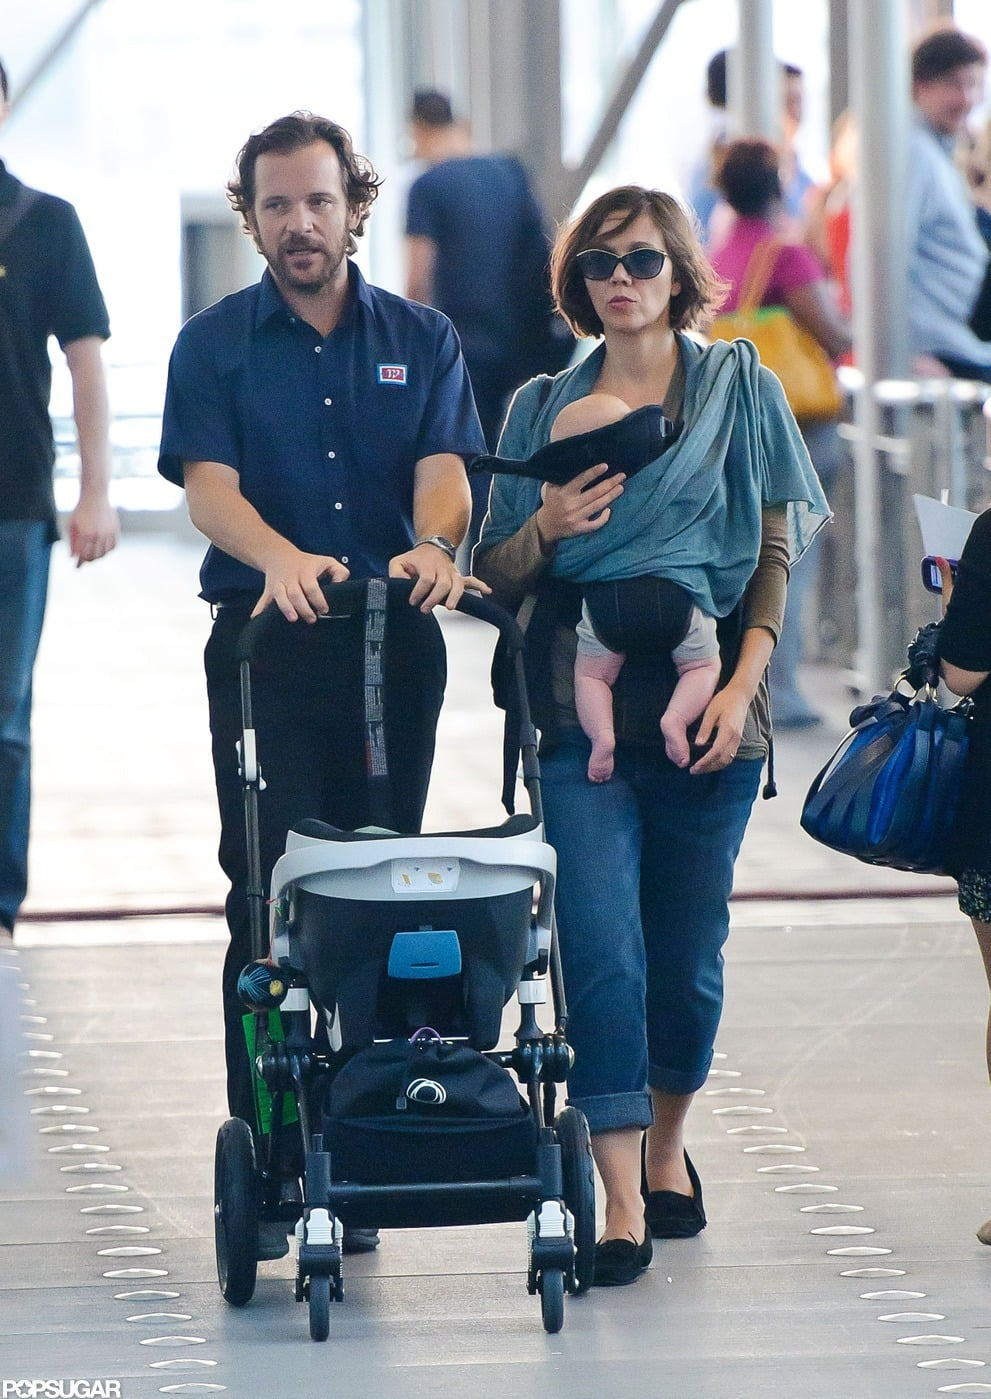 Peter Sarsgaard hung out with Maggie Gyllenhaal and his girls, Ramona and Gloria, on the set of Very Good Girls in NYC.